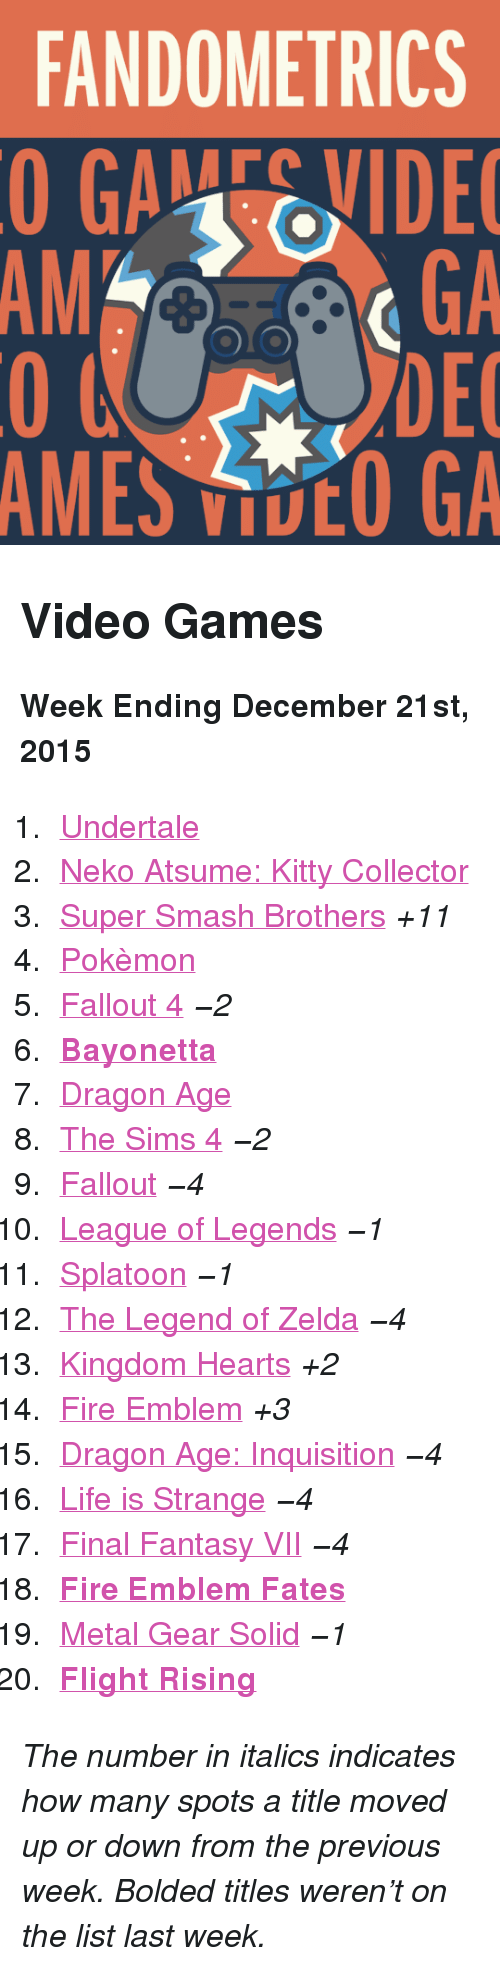 "Bayonetta: FANDOMETRICS  GAEVIDE  GA  DEC  AMES VOO GA  AM <h2>Video Games</h2><p><b>Week Ending December 21st, 2015</b></p><ol><li><a href=""http://www.tumblr.com/search/undertale"">Undertale</a></li>  <li><a href=""http://www.tumblr.com/search/neko%20atsume"">Neko Atsume: Kitty Collector</a></li>  <li><a href=""http://www.tumblr.com/search/super%20smash%20bros"">Super Smash Brothers</a> <i>+11</i></li>  <li><a href=""http://www.tumblr.com/search/pokemon"">Pokèmon</a> </li>  <li><a href=""http://www.tumblr.com/search/fallout%204"">Fallout 4</a> <i>−2</i></li>  <li><a href=""http://www.tumblr.com/search/bayonetta""><b>Bayonetta</b></a></li>  <li><a href=""http://www.tumblr.com/search/dragon%20age"">Dragon Age</a> </li>  <li><a href=""http://www.tumblr.com/search/sims%204"">The Sims 4</a> <i>−2</i></li>  <li><a href=""http://www.tumblr.com/search/fallout"">Fallout</a> <i>−4</i></li>  <li><a href=""http://www.tumblr.com/search/league%20of%20legends"">League of Legends</a> <i>−1</i></li>  <li><a href=""http://www.tumblr.com/search/splatoon"">Splatoon</a> <i>−1</i></li>  <li><a href=""http://www.tumblr.com/search/legend%20of%20zelda"">The Legend of Zelda</a> <i>−4</i></li>  <li><a href=""http://www.tumblr.com/search/kingdom%20hearts"">Kingdom Hearts</a> <i>+2</i></li>  <li><a href=""http://www.tumblr.com/search/fire%20emblem"">Fire Emblem</a> <i>+3</i></li>  <li><a href=""http://www.tumblr.com/search/dragon%20age%20inquisition"">Dragon Age: Inquisition</a> <i>−4</i></li>  <li><a href=""http://www.tumblr.com/search/life%20is%20strange"">Life is Strange</a> <i>−4</i></li>  <li><a href=""http://www.tumblr.com/search/final%20fantasy%20vii"">Final Fantasy VII</a> <i>−4</i></li>  <li><a href=""http://www.tumblr.com/search/fire%20emblem%20fates""><b>Fire Emblem Fates</b></a></li>  <li><a href=""http://www.tumblr.com/search/metal%20gear%20solid"">Metal Gear Solid</a> <i>−1</i></li>  <li><a href=""http://www.tumblr.com/search/flight%20rising""><b>Flight Rising</b></a></li></ol><p><i>The number in italics indicates how many spots a title moved up or down from the previous week. Bolded titles weren't on the list last week.</i></p>"